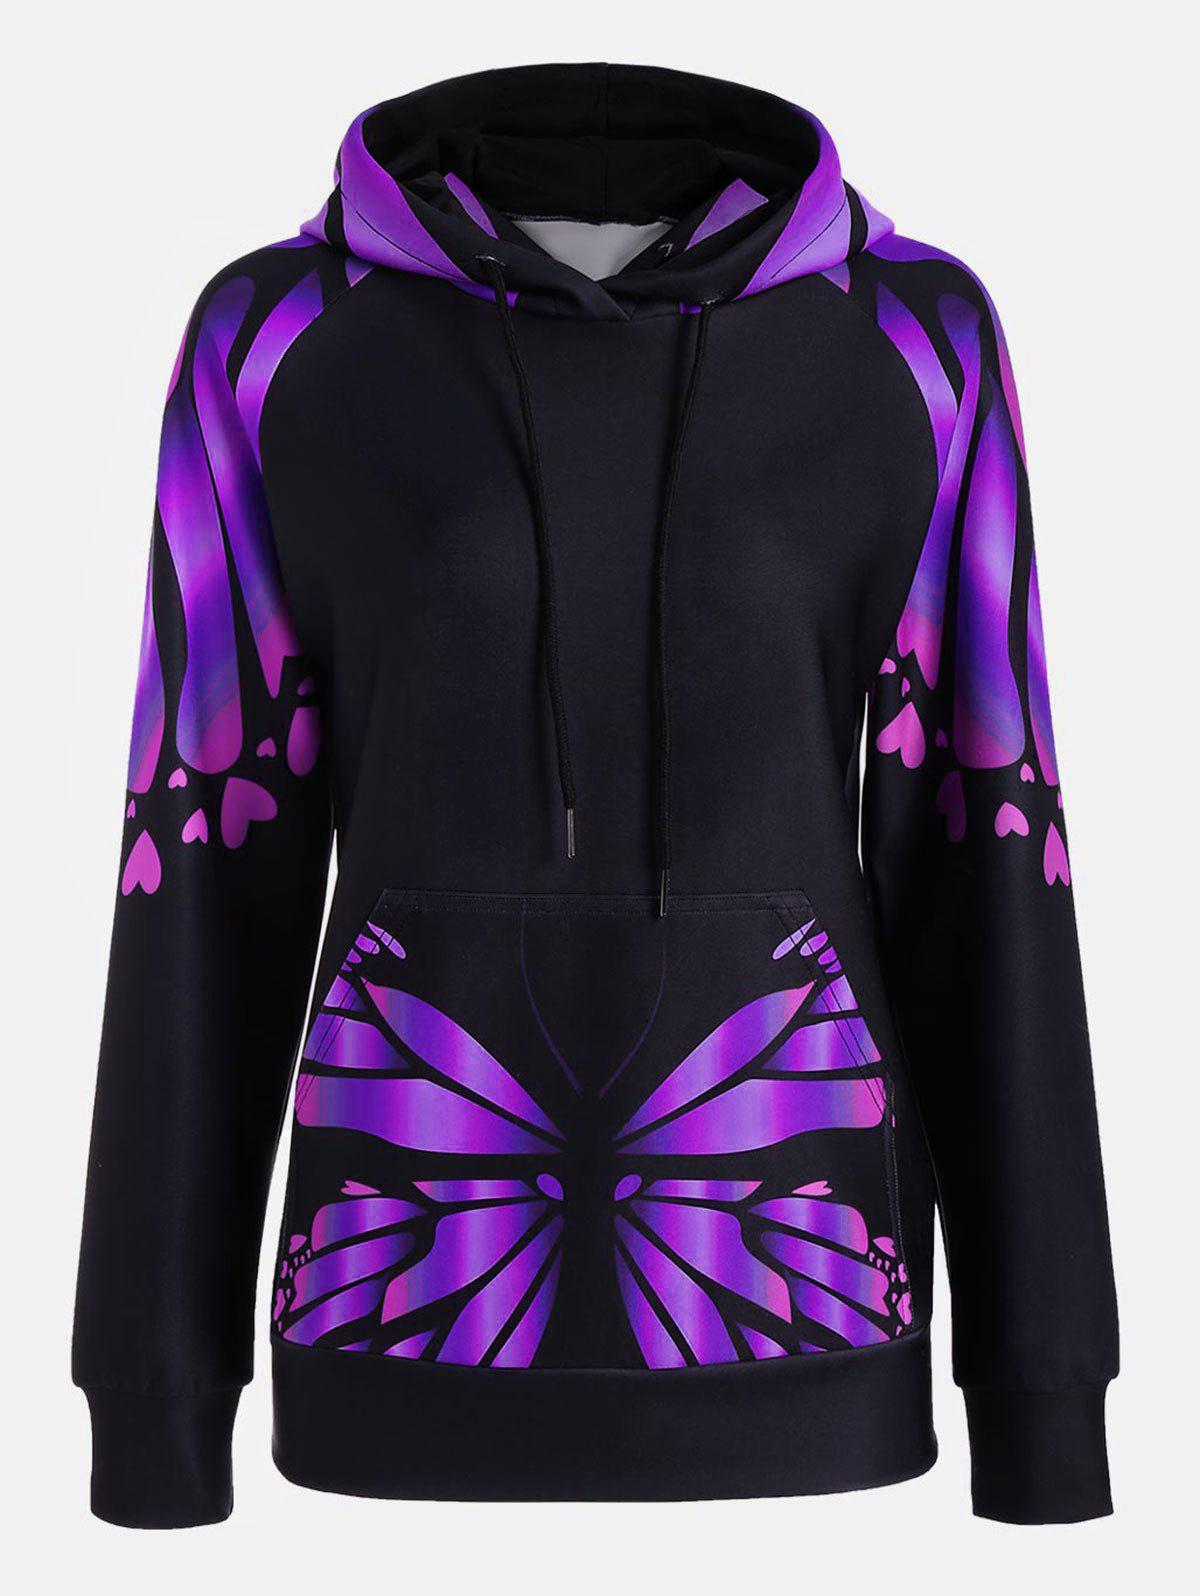 Butterfly Print Raglan Sleeve Kangaroo HoodieWOMEN<br><br>Size: M; Color: PURPLE; Material: Polyester; Shirt Length: Regular; Sleeve Length: Full; Style: Fashion; Pattern Style: Insect,Print; Elasticity: Elastic; Season: Fall,Spring; Weight: 0.4100kg; Package Contents: 1 x Hoodie;